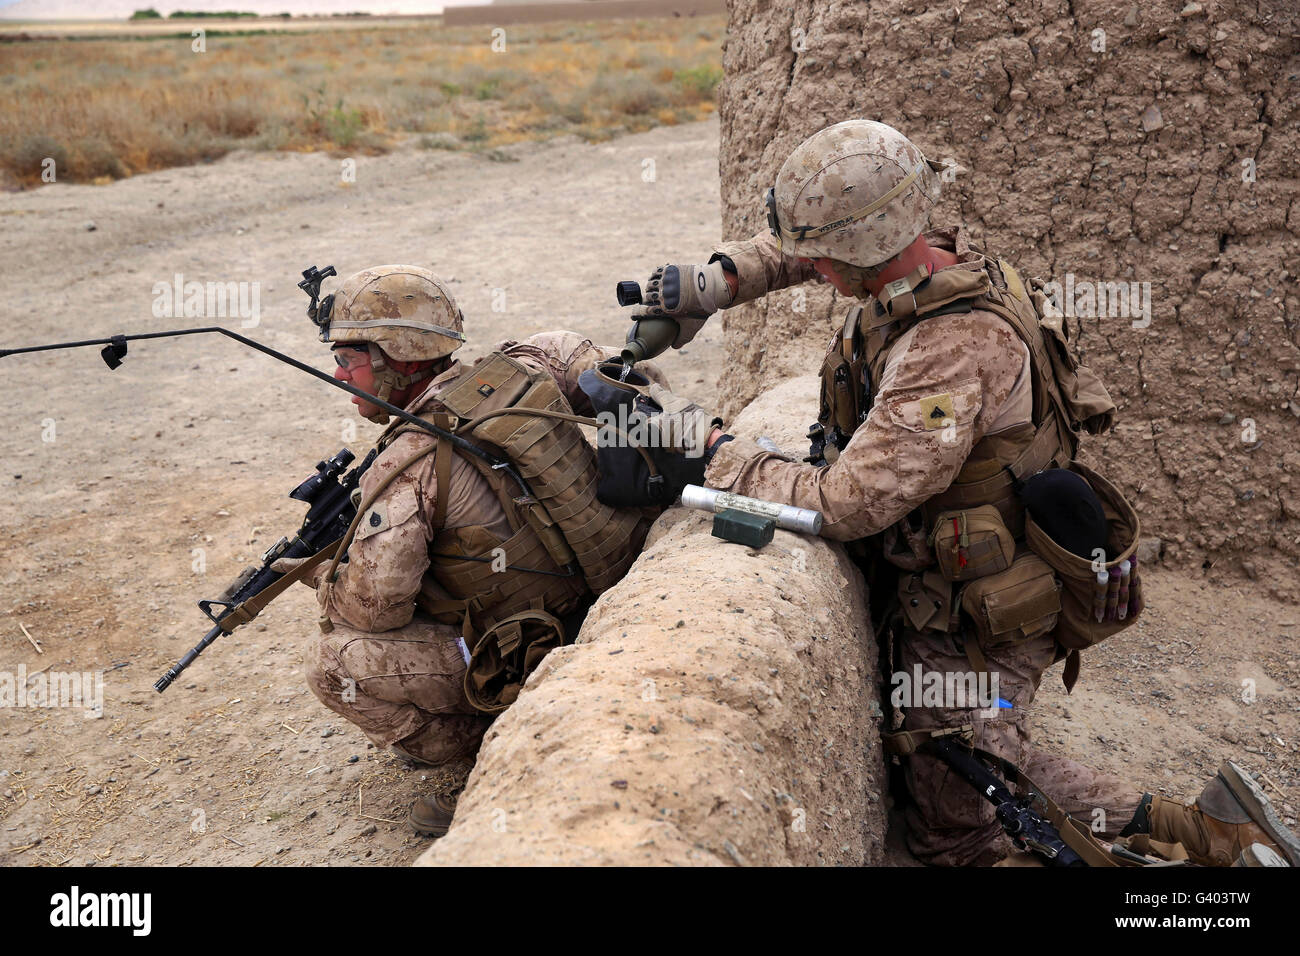 U.S. Marine fills a Camelbak bladder with water for a fellow Marine. - Stock Image